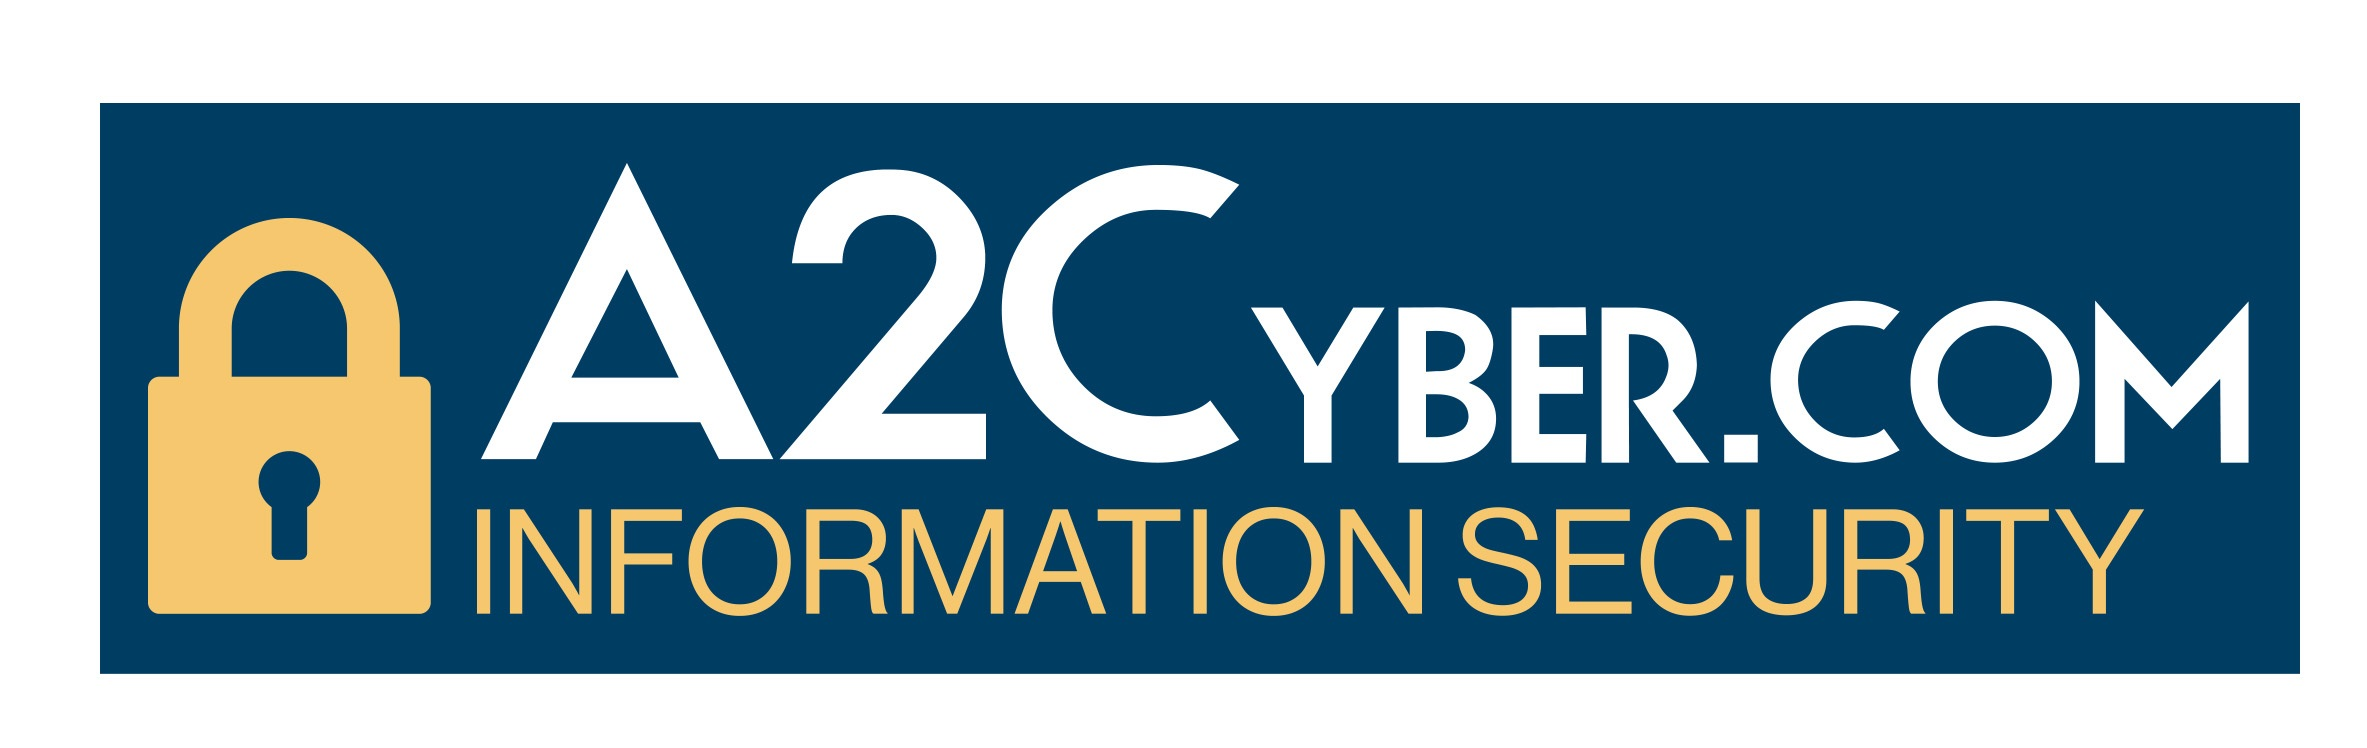 A2 Cyber Security